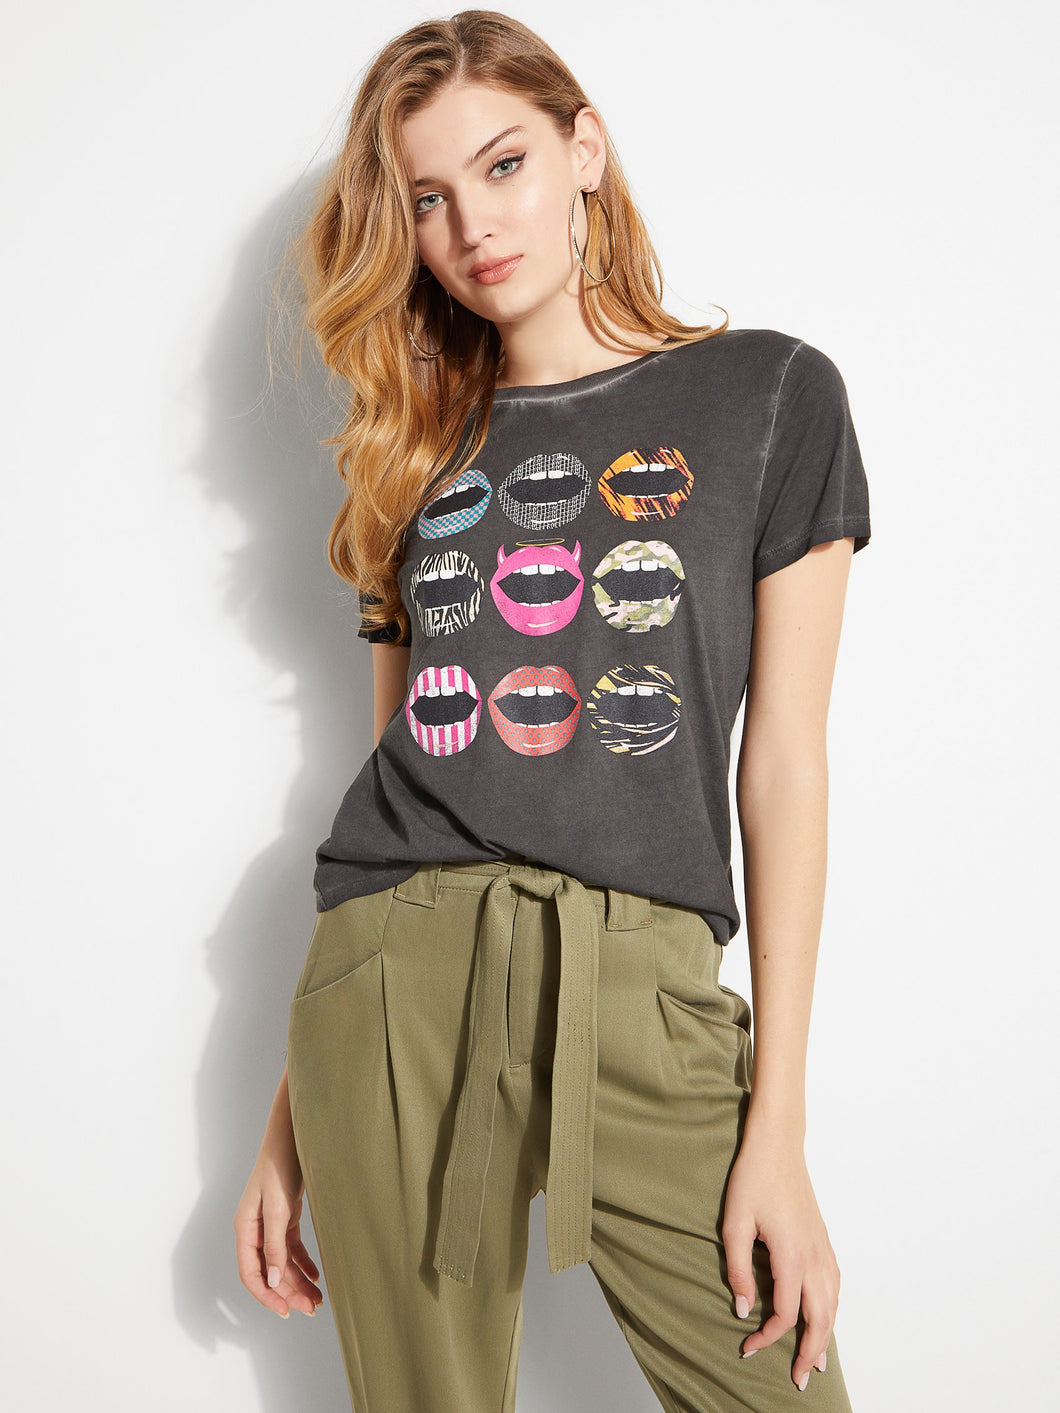 SS CRAZY LIPS TEE